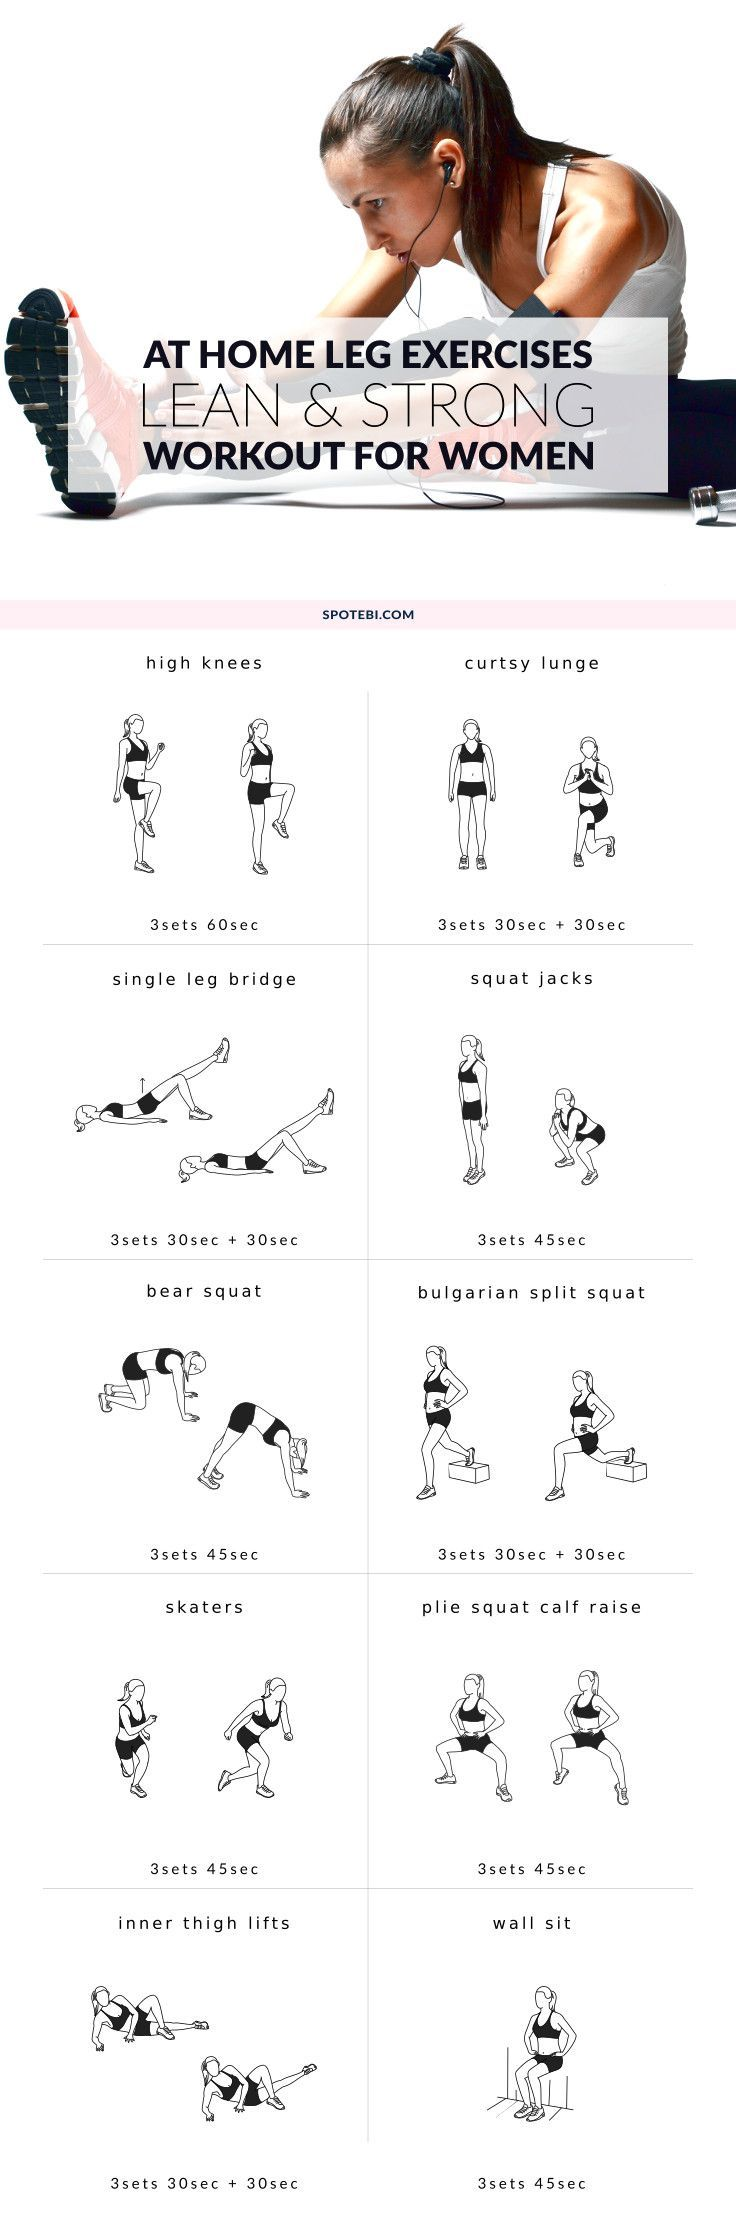 Upgrade your workout routine with these 10 leg exercises for women. Work your thighs, hips, quads, hamstrings and calves at home